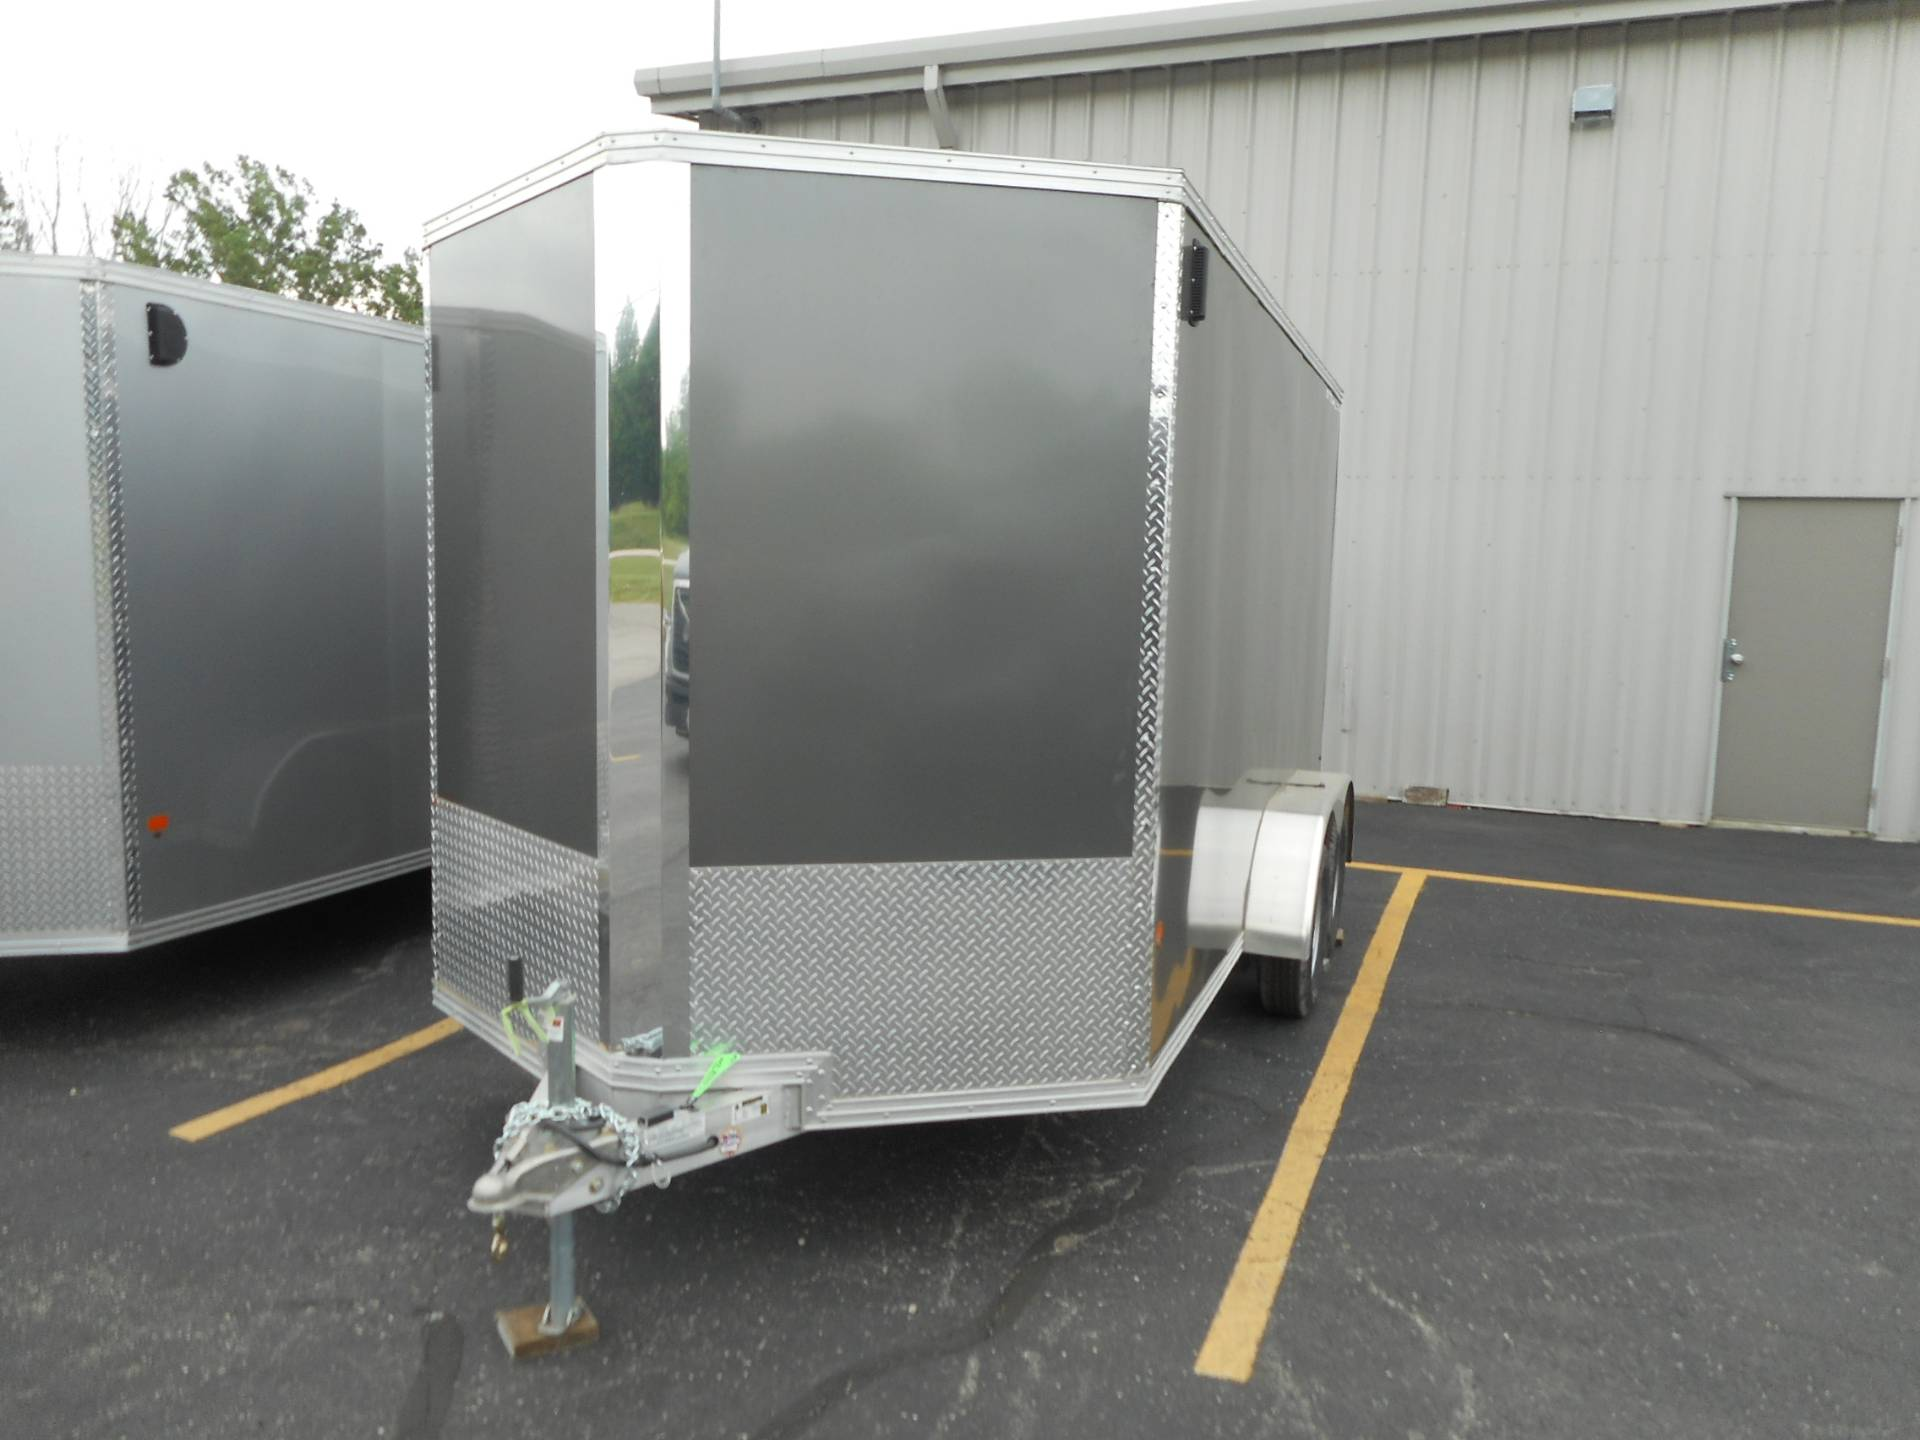 2019 Alcom Trailer 7X14 STEALTH ALUMINUM in Belvidere, Illinois - Photo 3